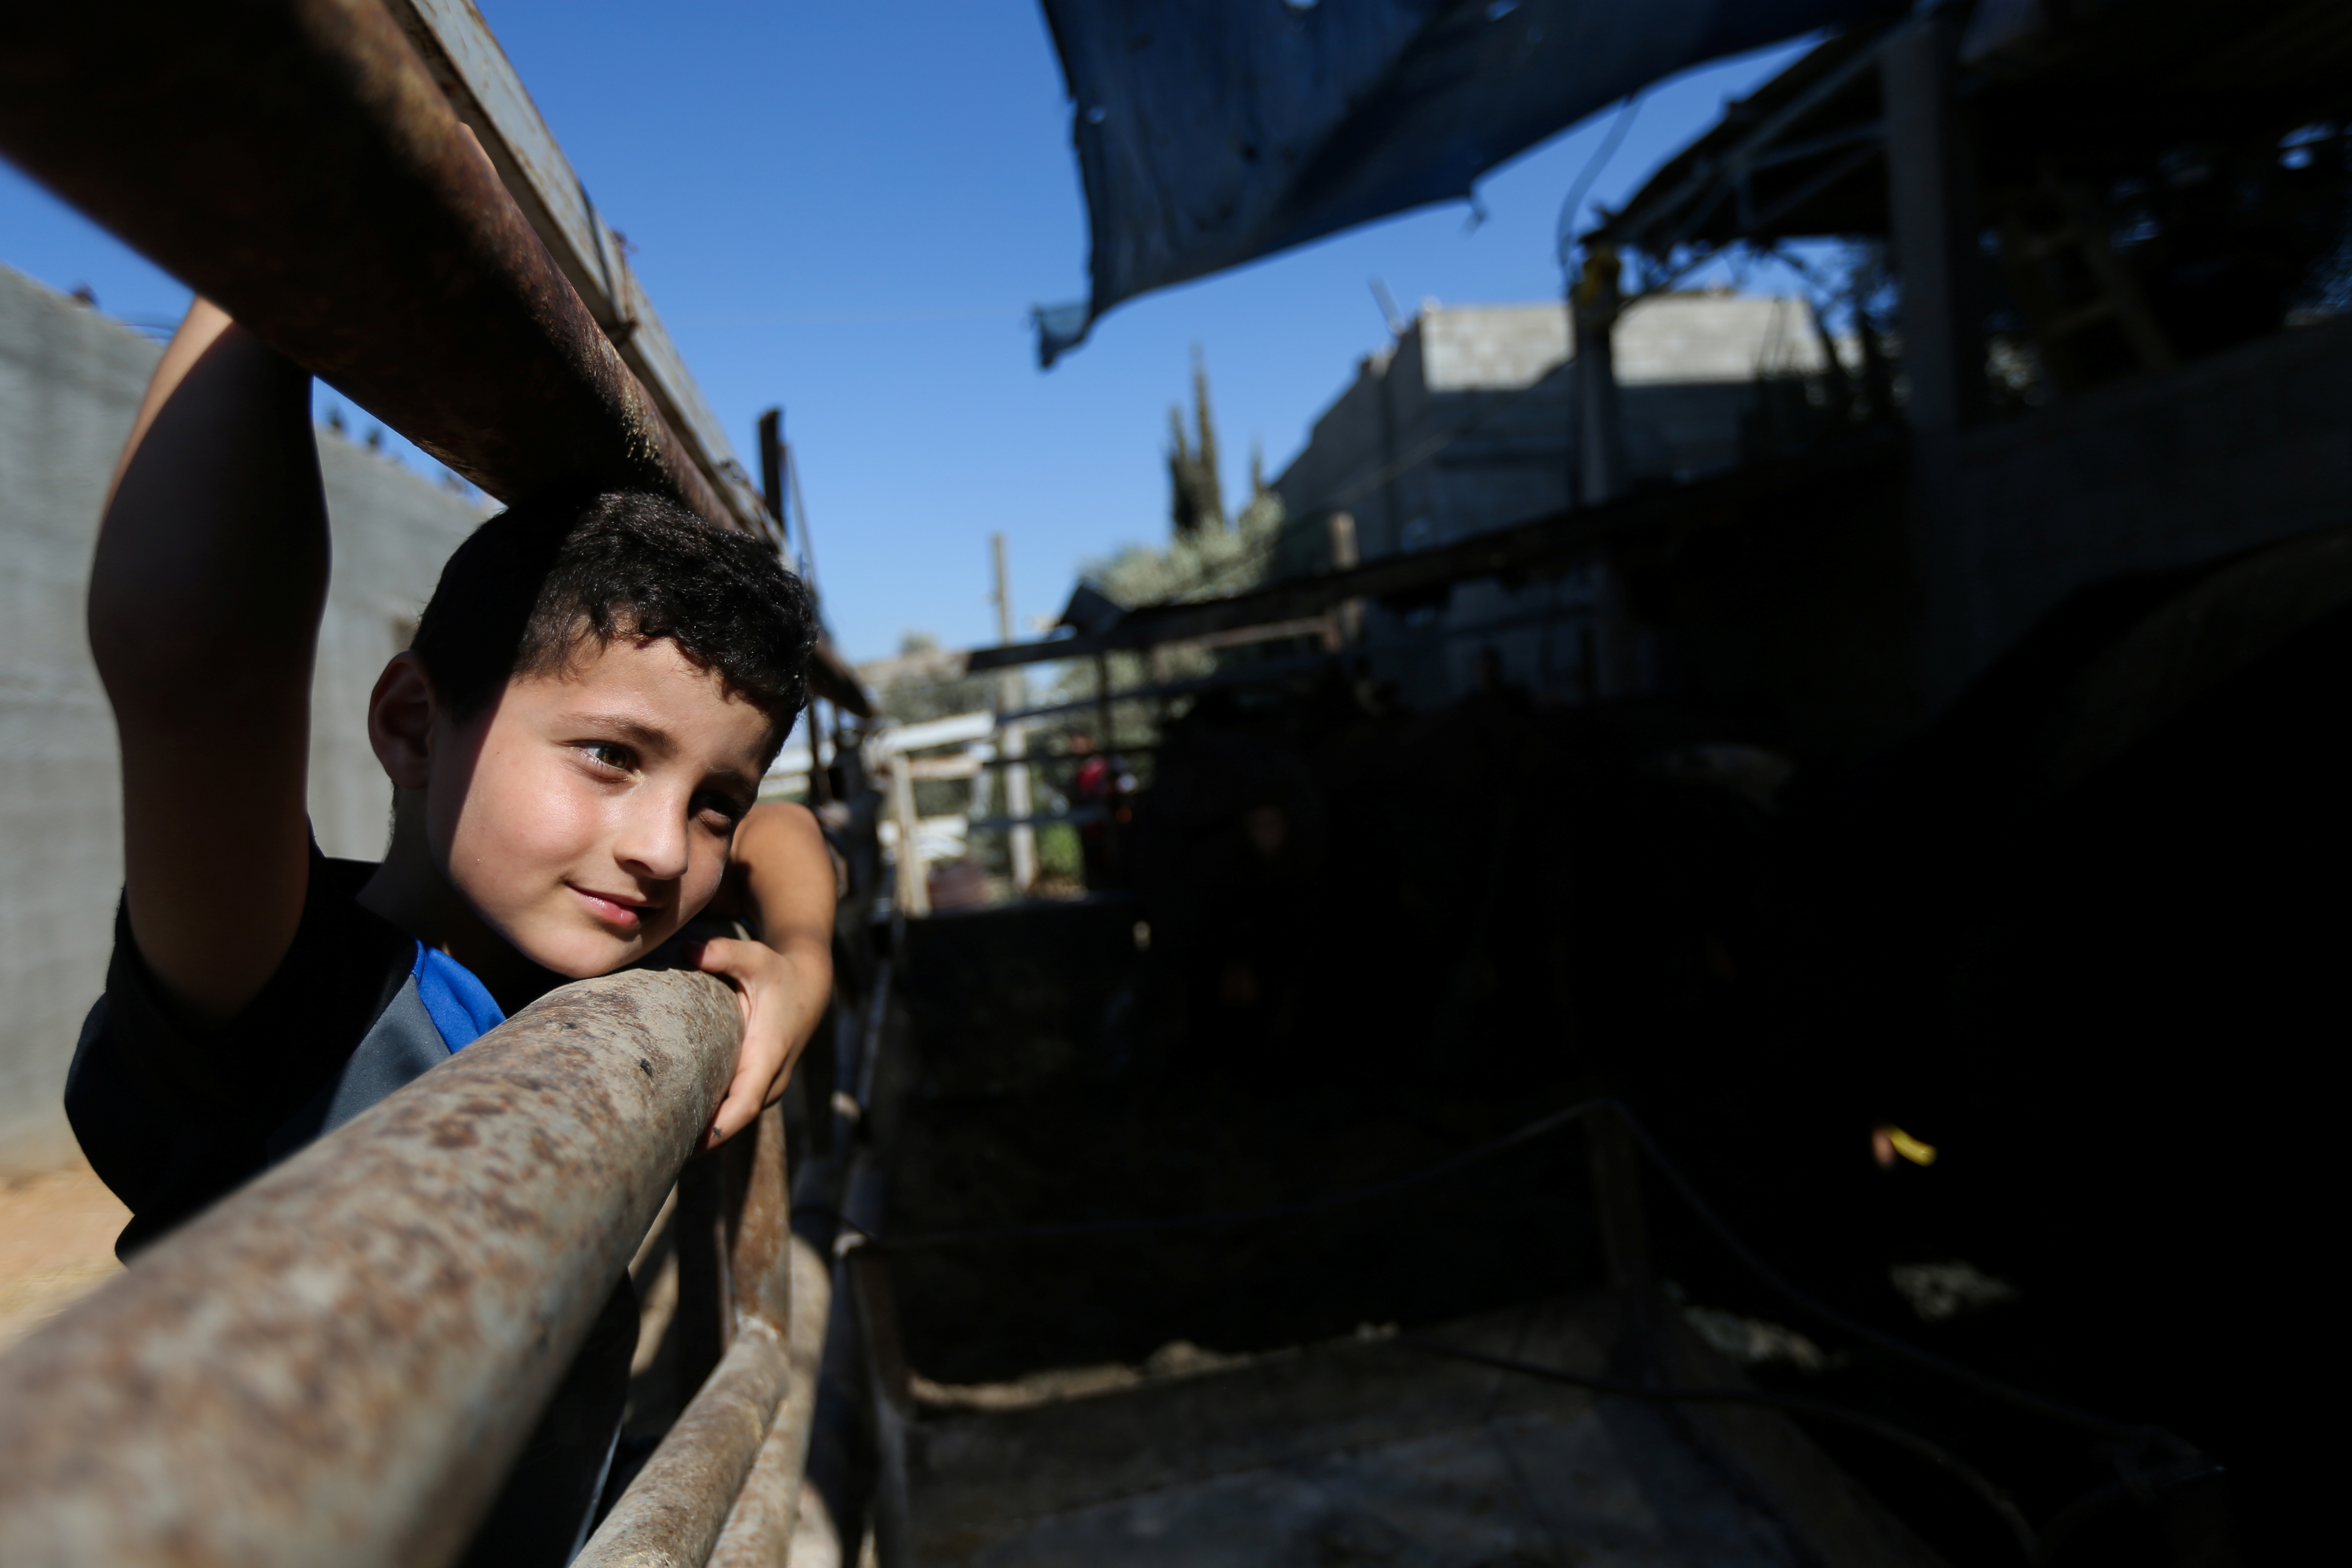 Palestinian boy Adam Issa looks on at a cow farm, in the central Gaza Strip July 14, 2021. Picture taken July 14, 2021. REUTERS/Ibraheem Abu Mustafa